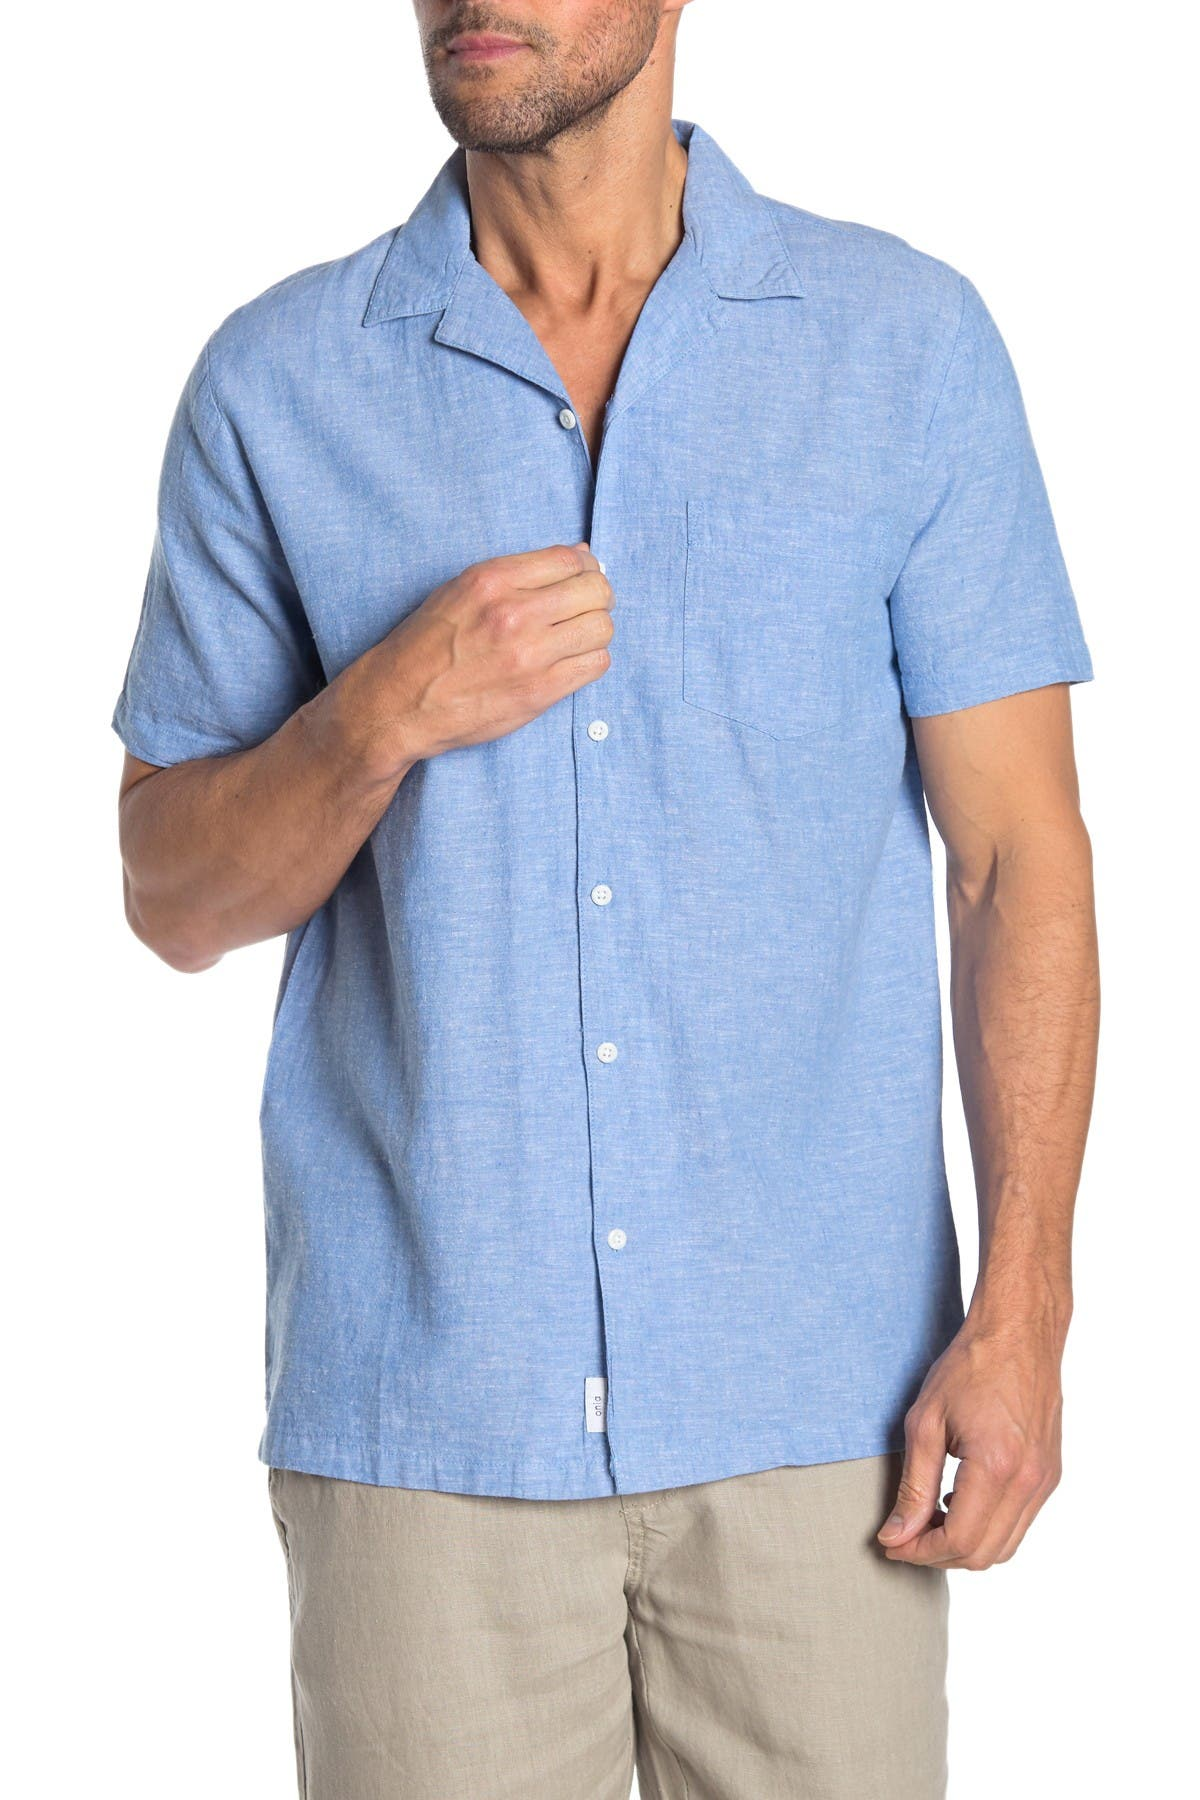 Image of Onia Solid Short Sleeve Trim Fit Shirt